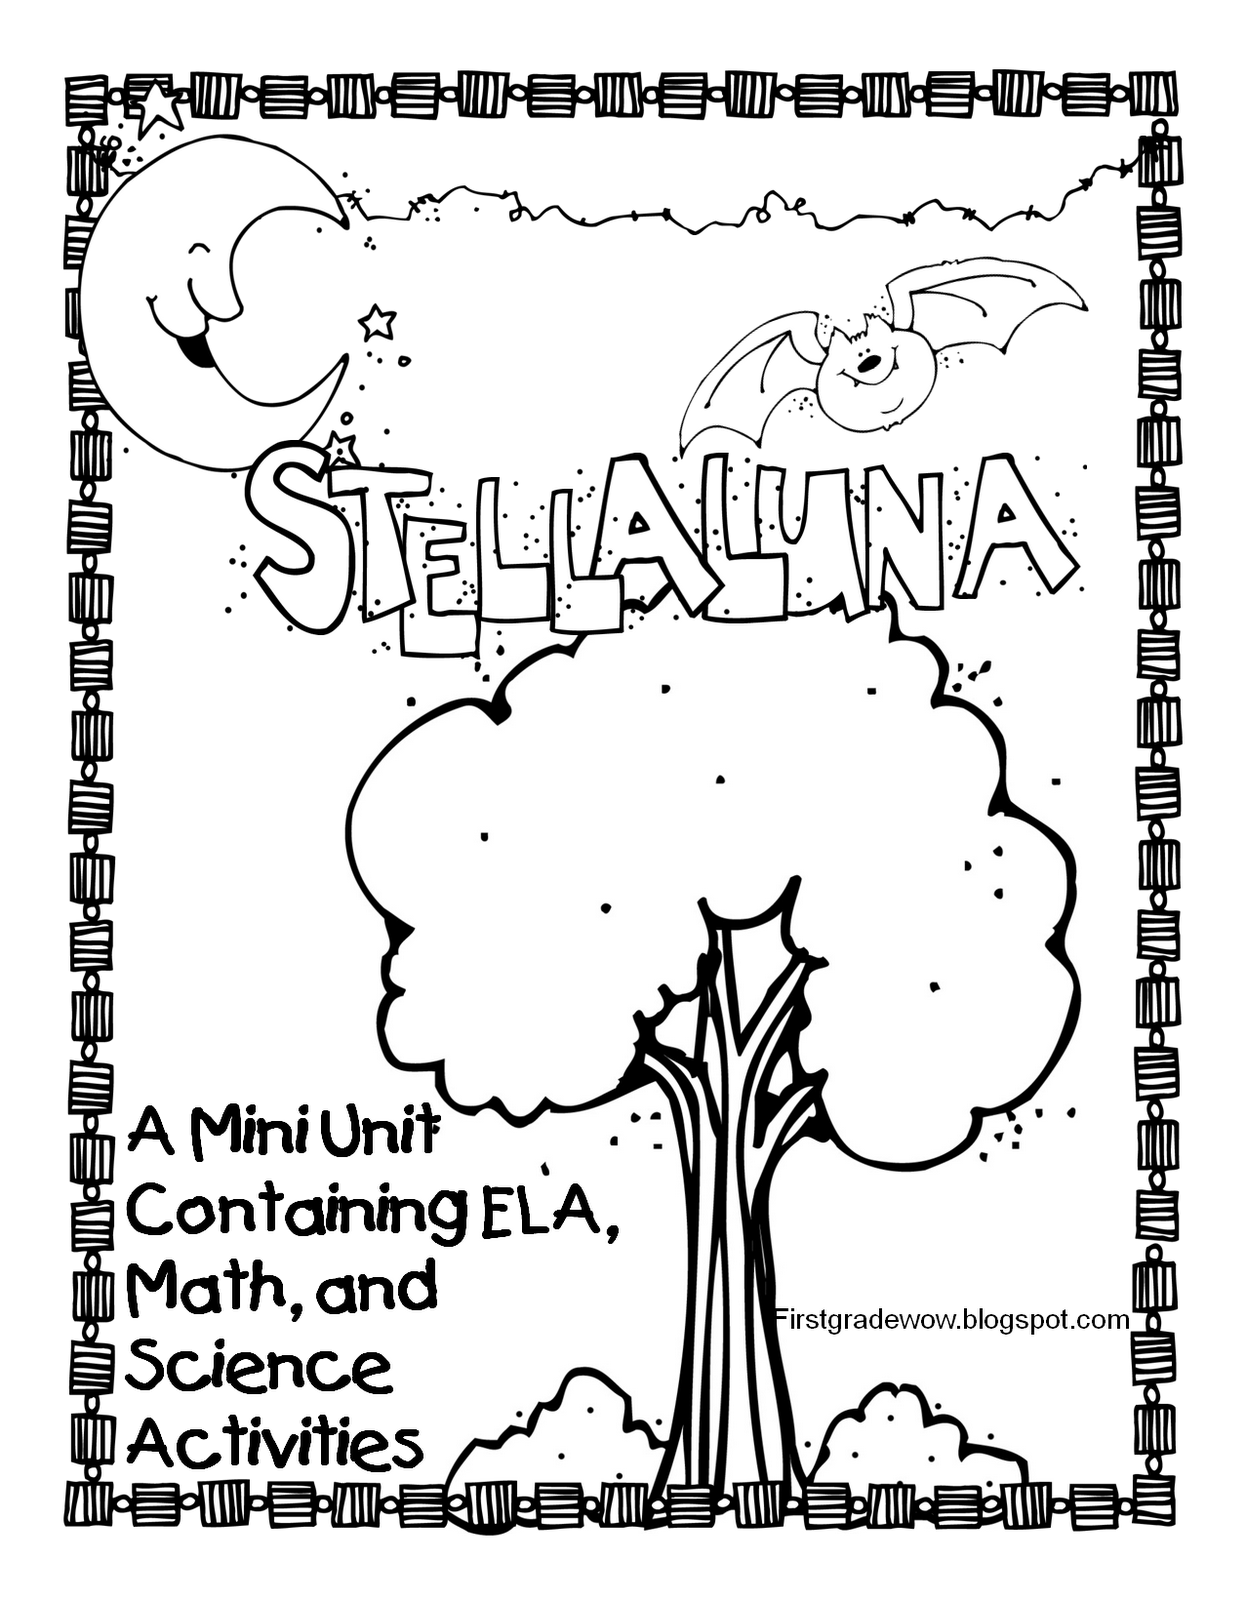 worksheet Stellaluna Worksheets first grade wow stellaluna saves the day and week s blends in word work observing things night sky science i think covered everything then some this unit